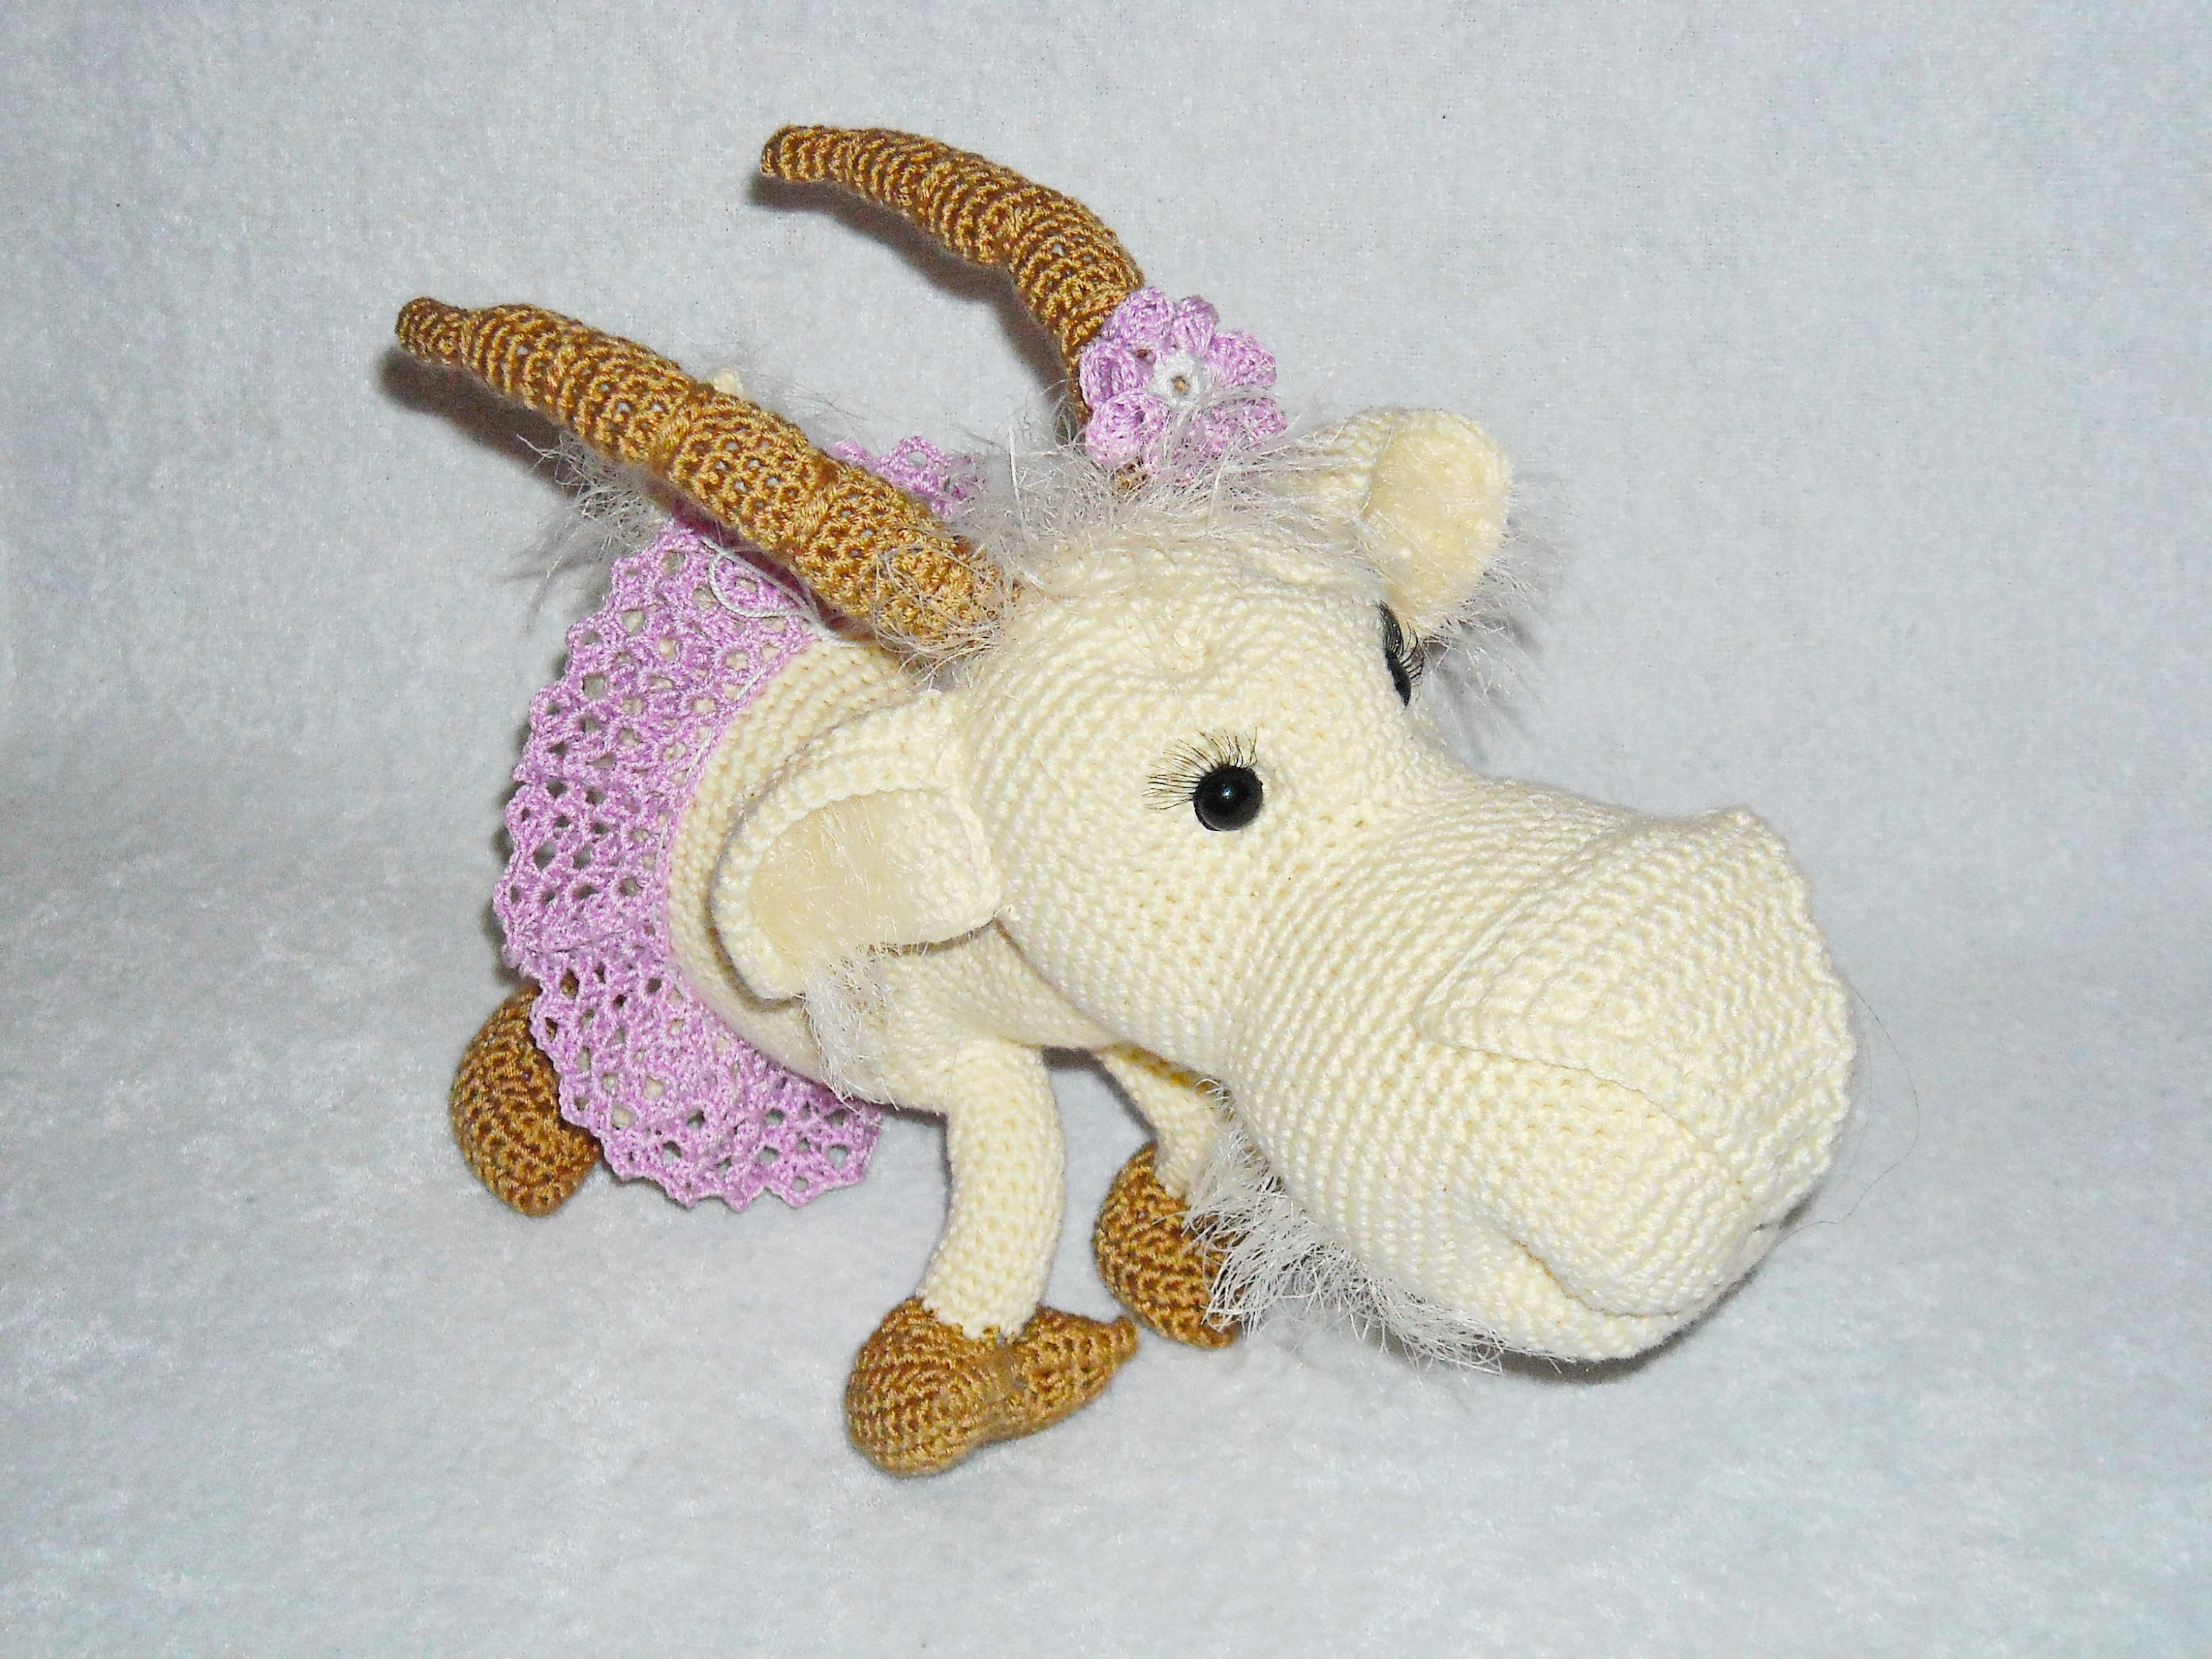 Amigurumi Goat Crochet Goat Stuffed Doll Toy Plush Goat Etsy